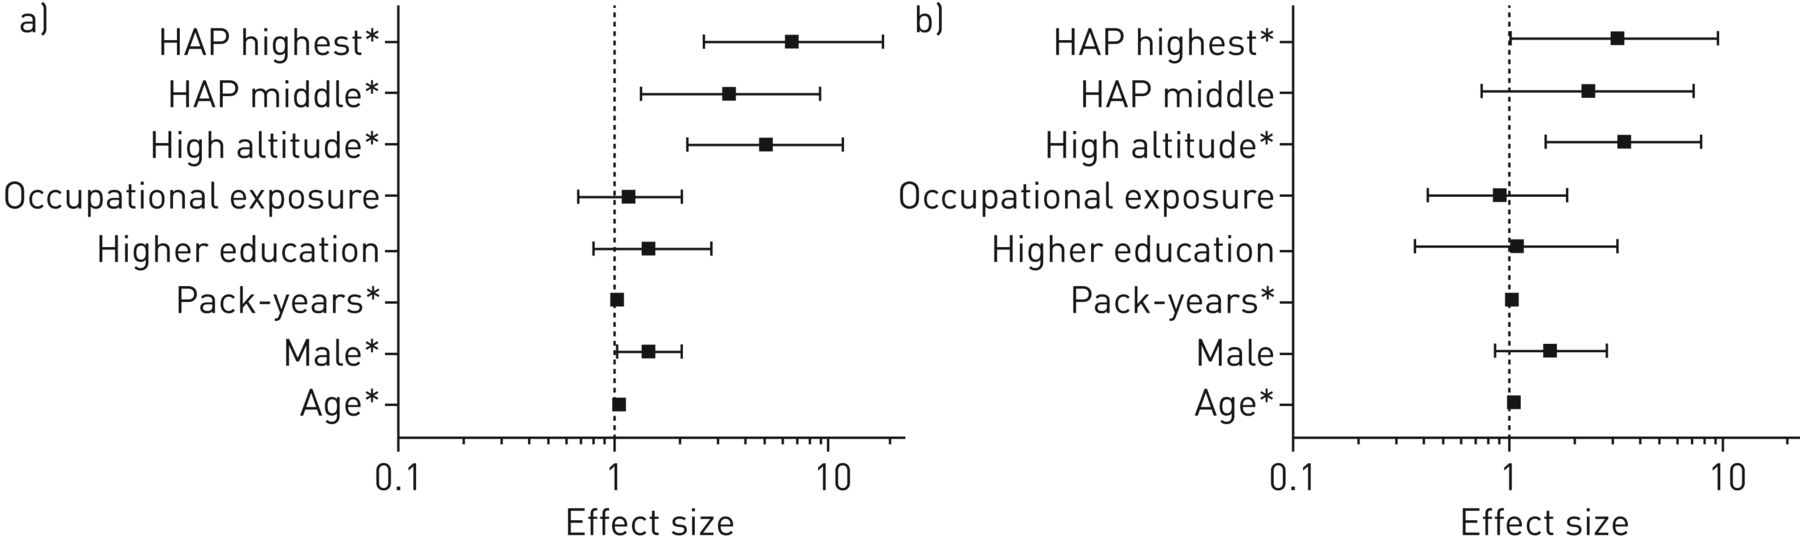 High COPD prevalence at high altitude: does household air